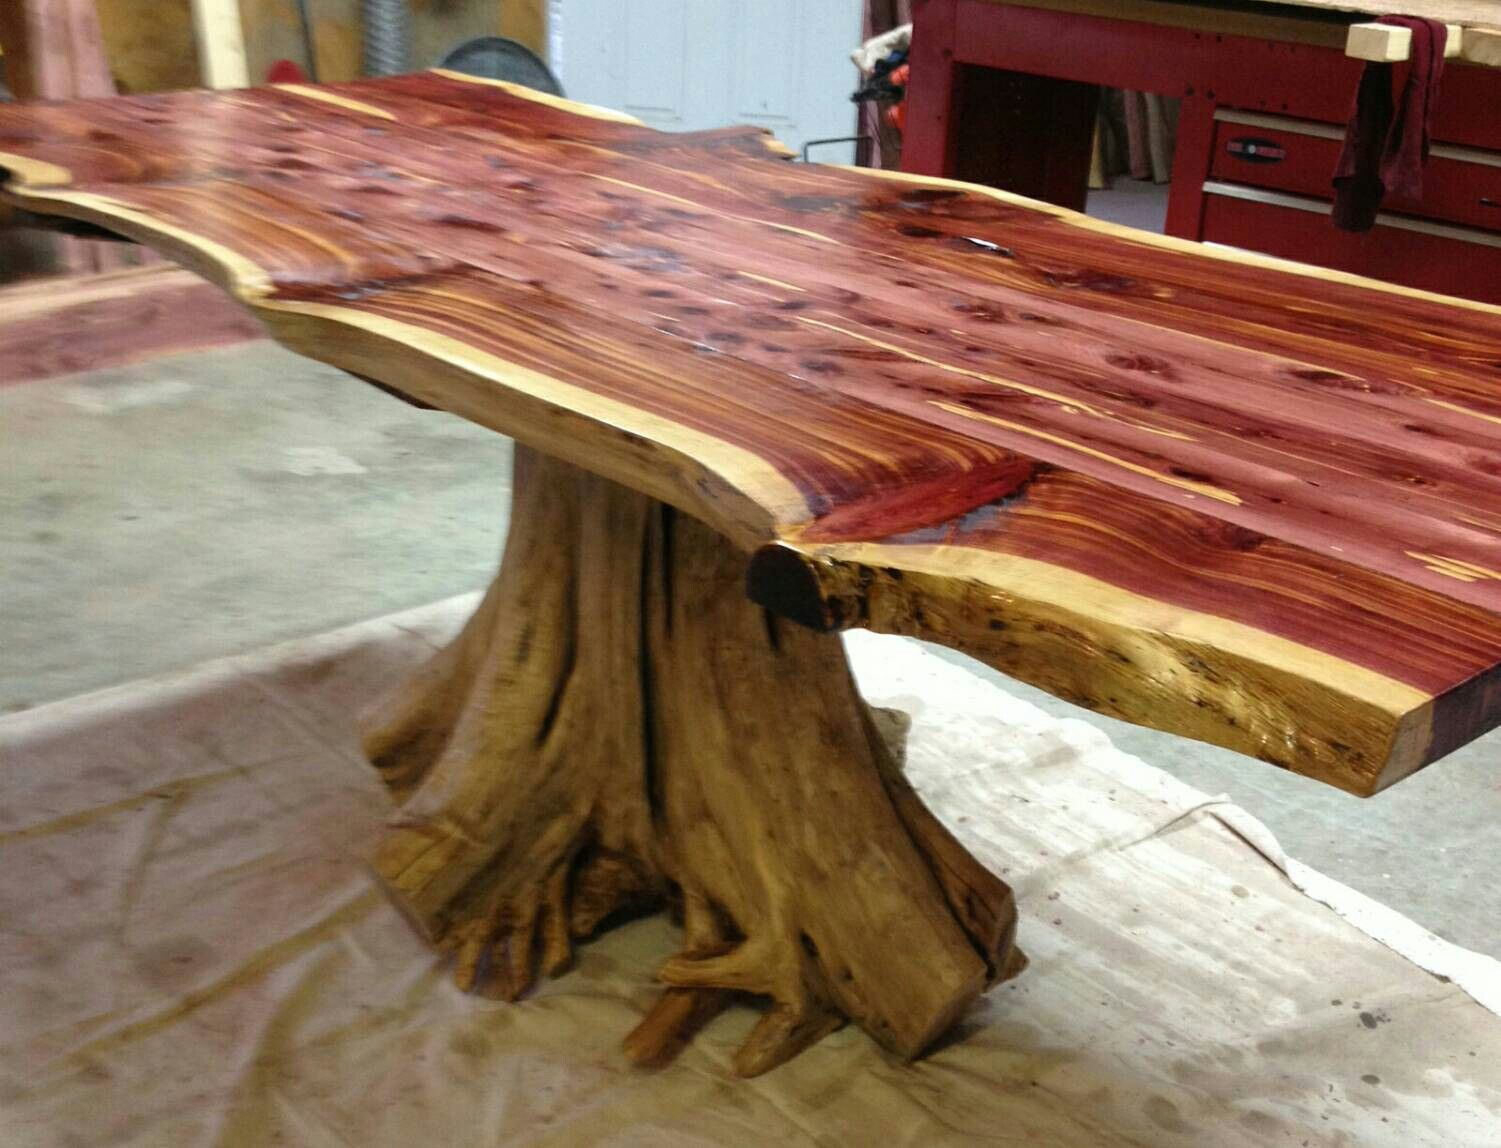 Live Edge Cedar Stump Dining Table Slab Furniture In 2019 Rustic